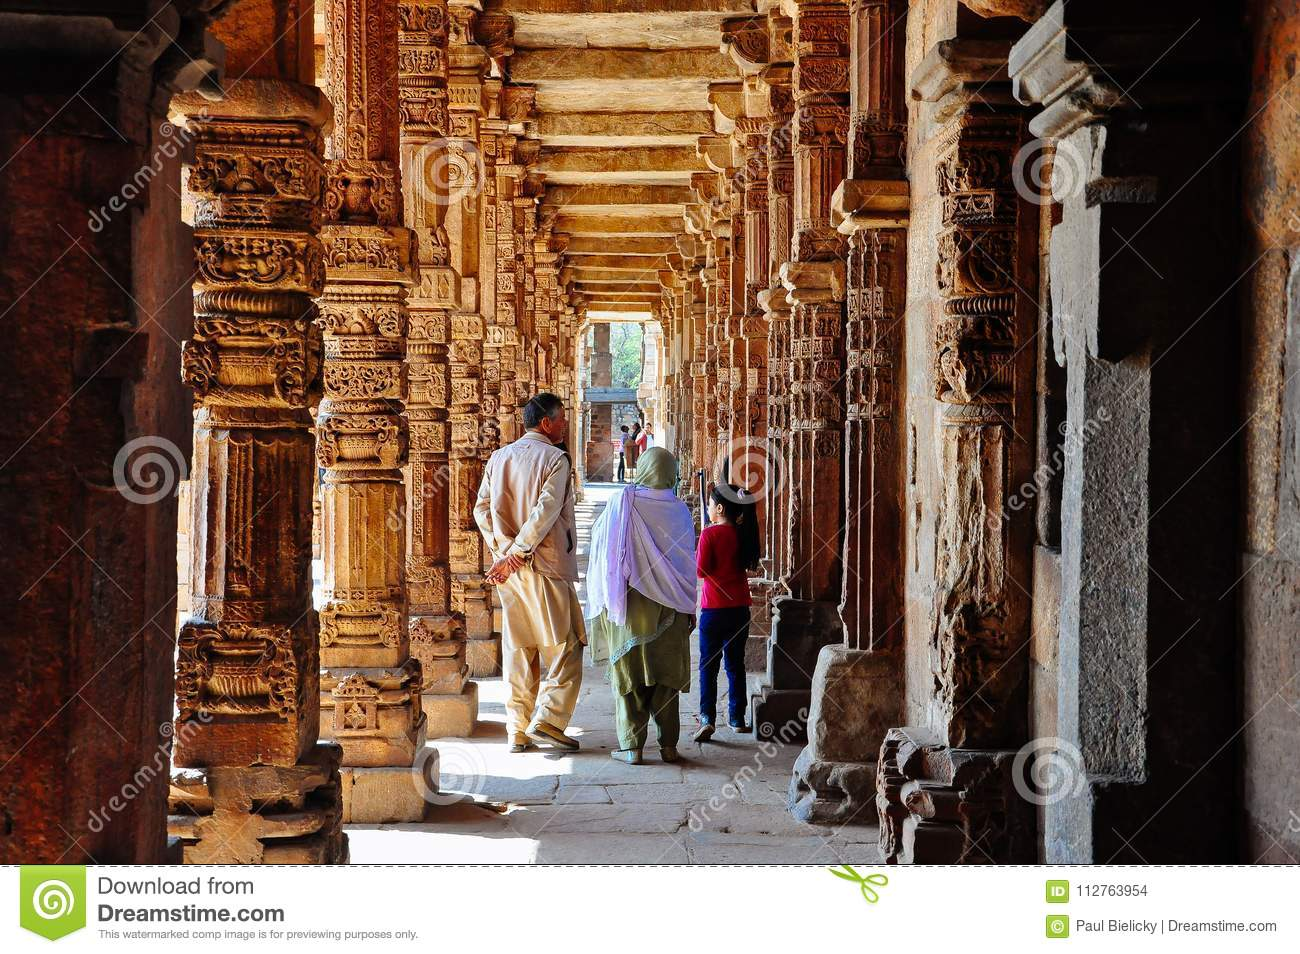 A family walks through Qutab Minar near Delhi, India.